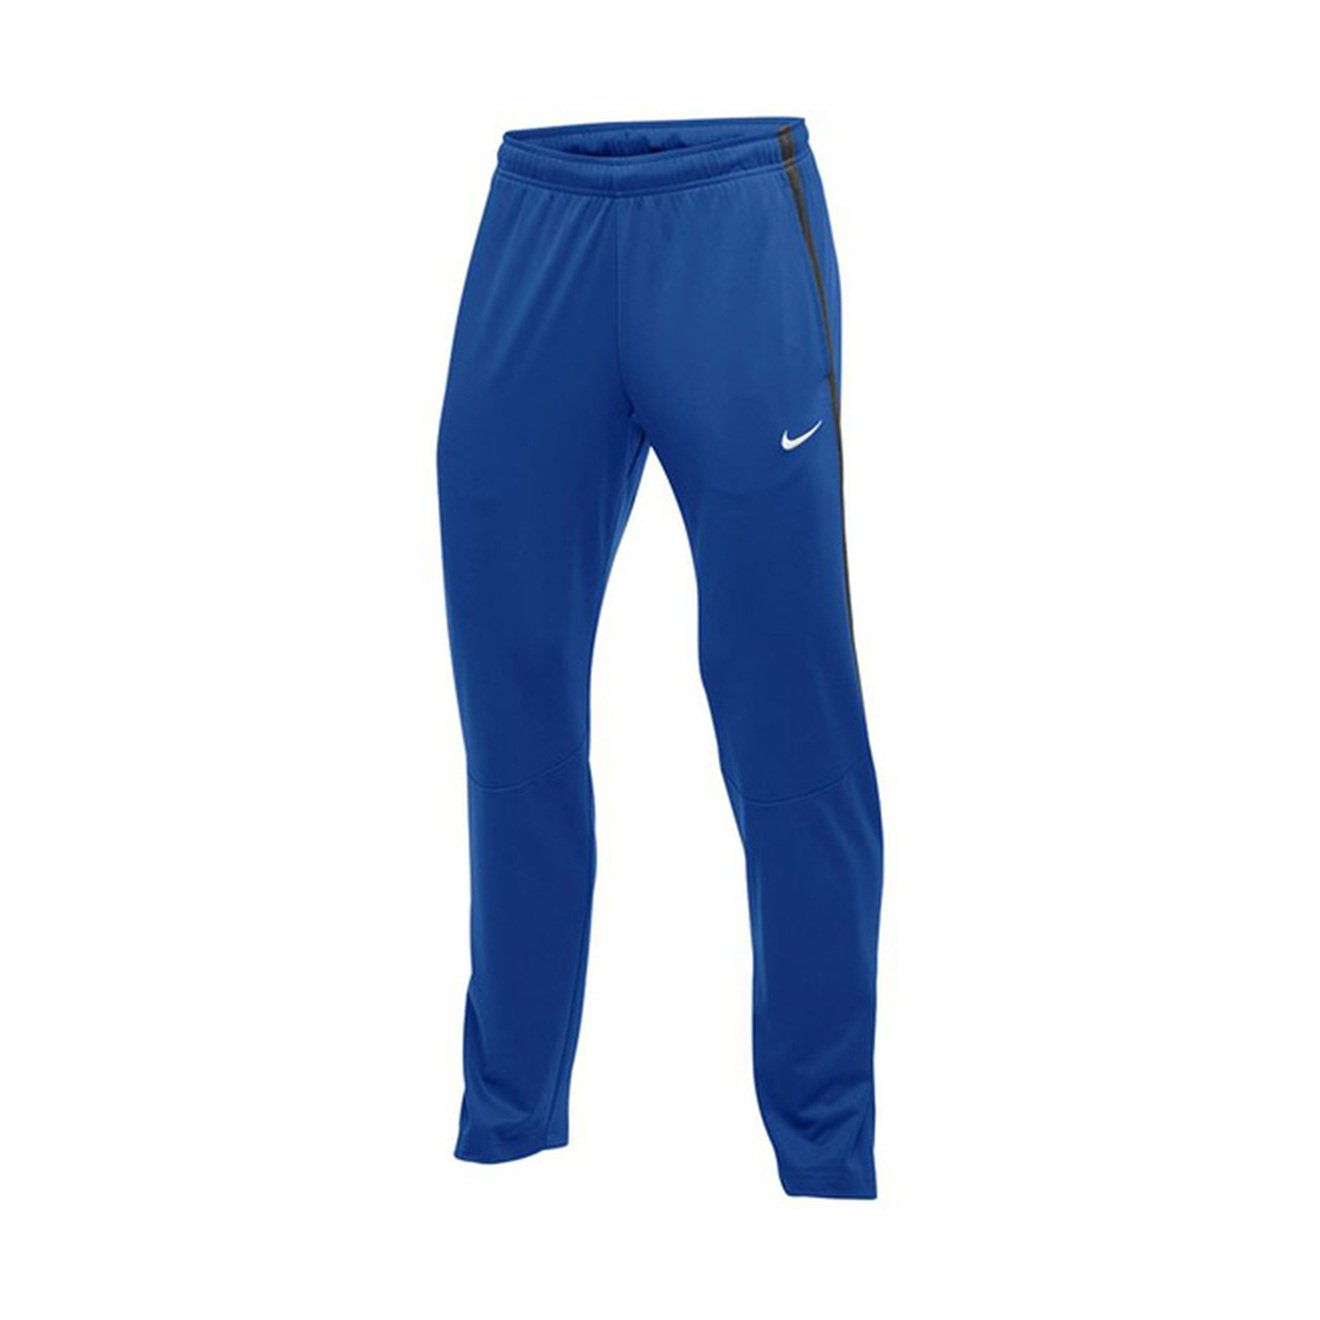 Nike Epic Training Pant Male Royal Small